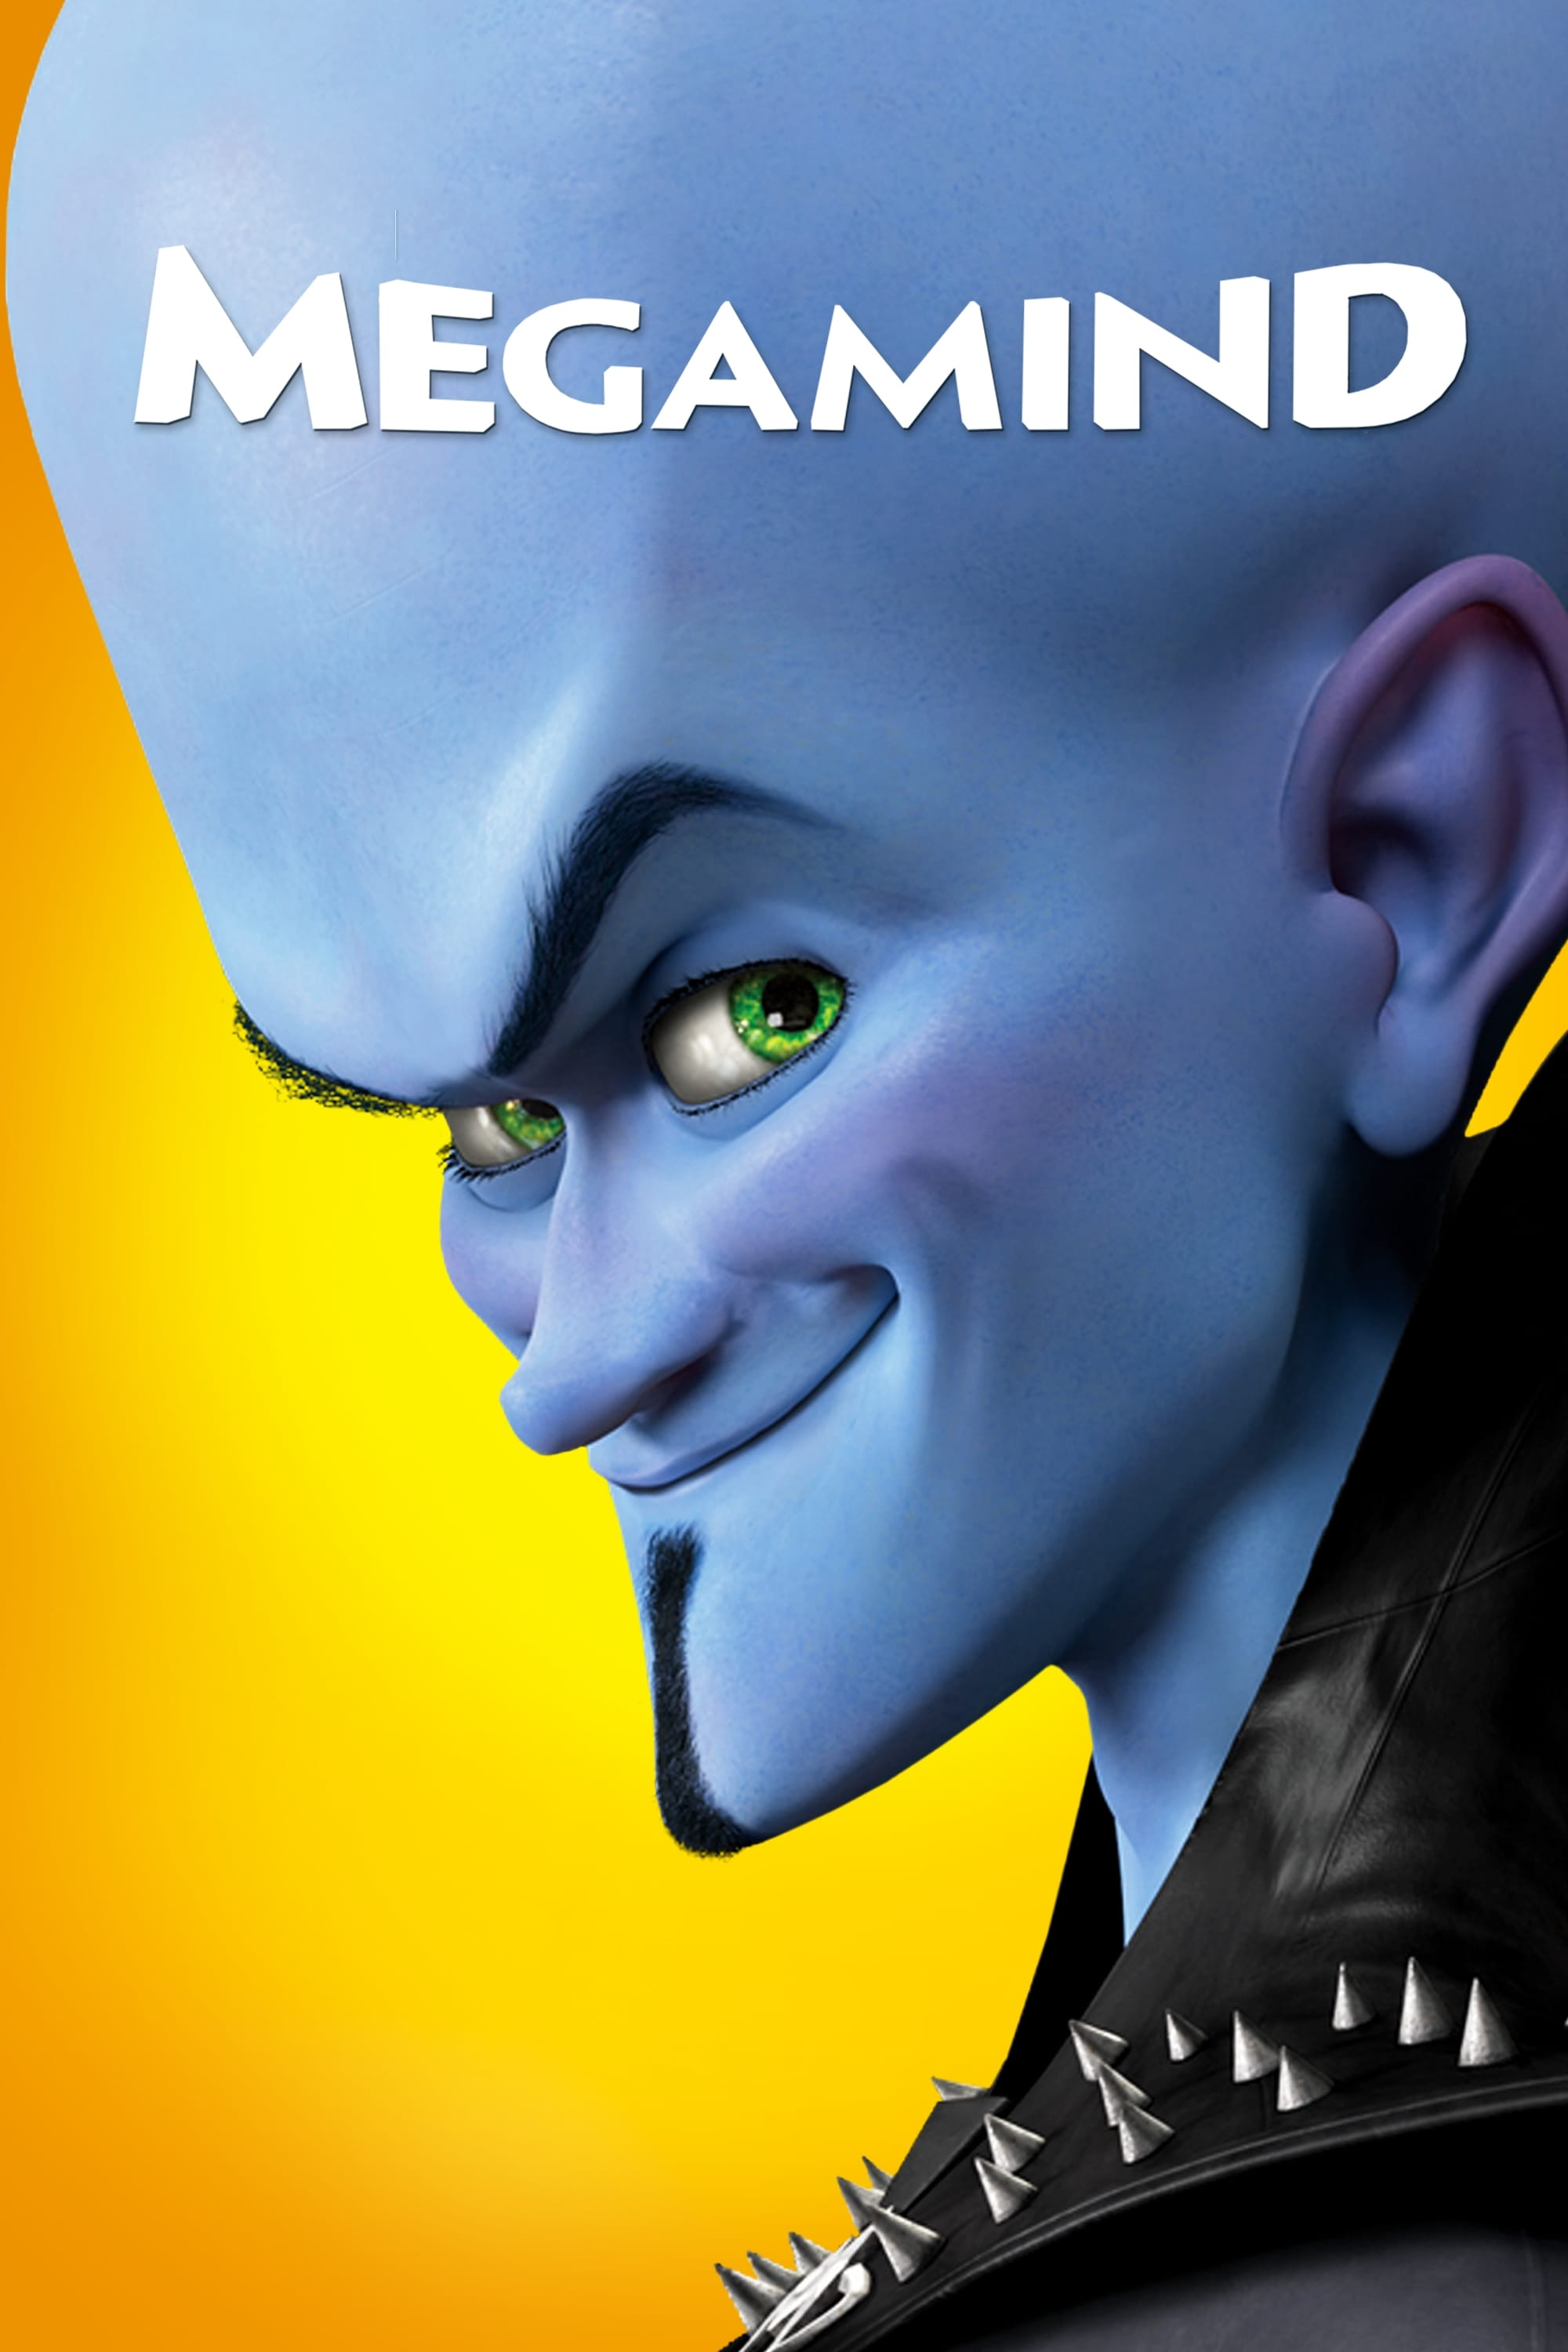 megamind ganzer film deutsch